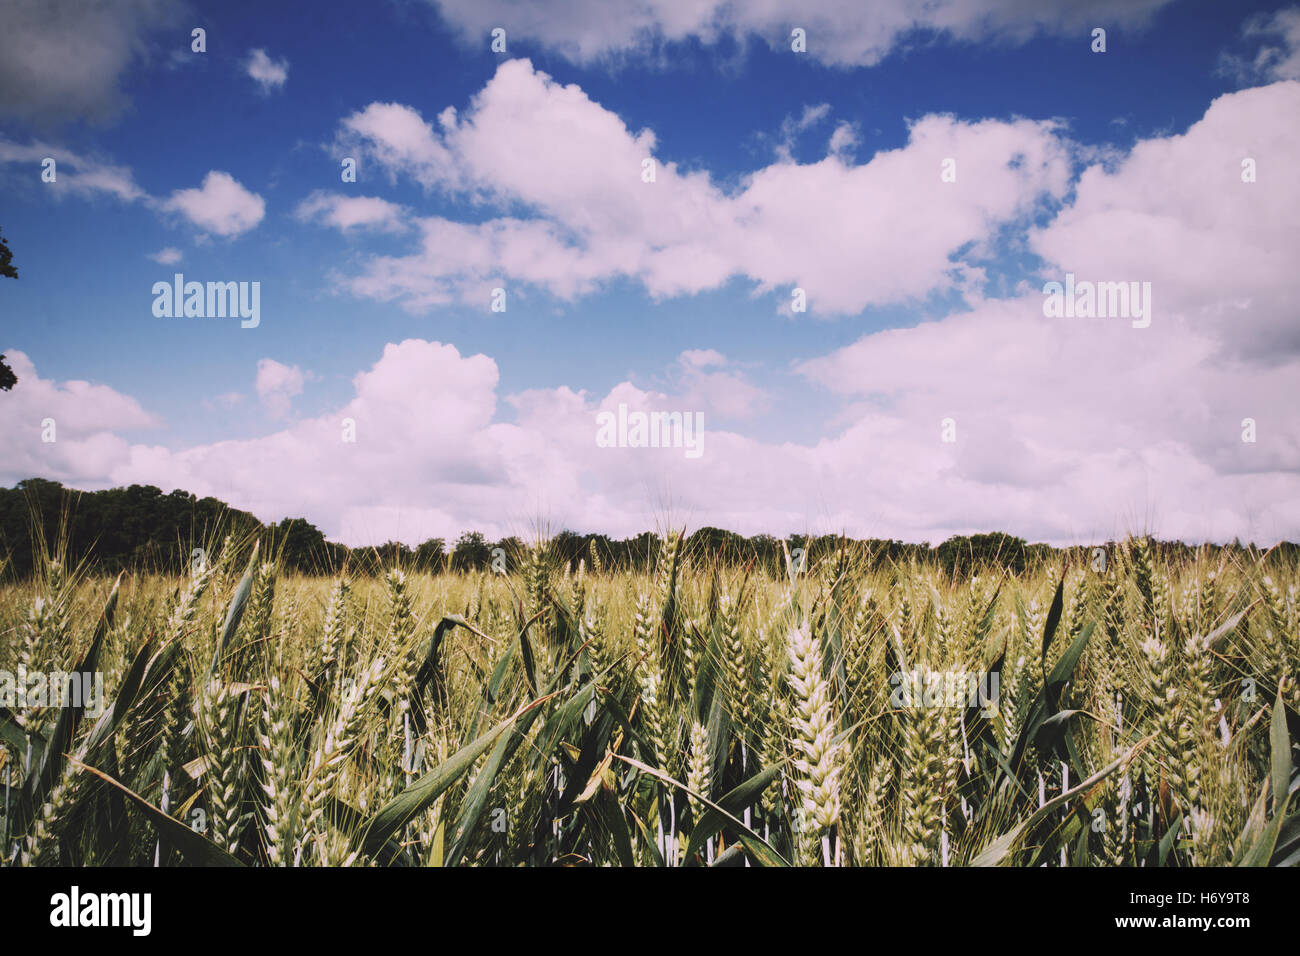 Wheat growing in a field in the Chilterns, England Vintage Retro Filter. - Stock Image